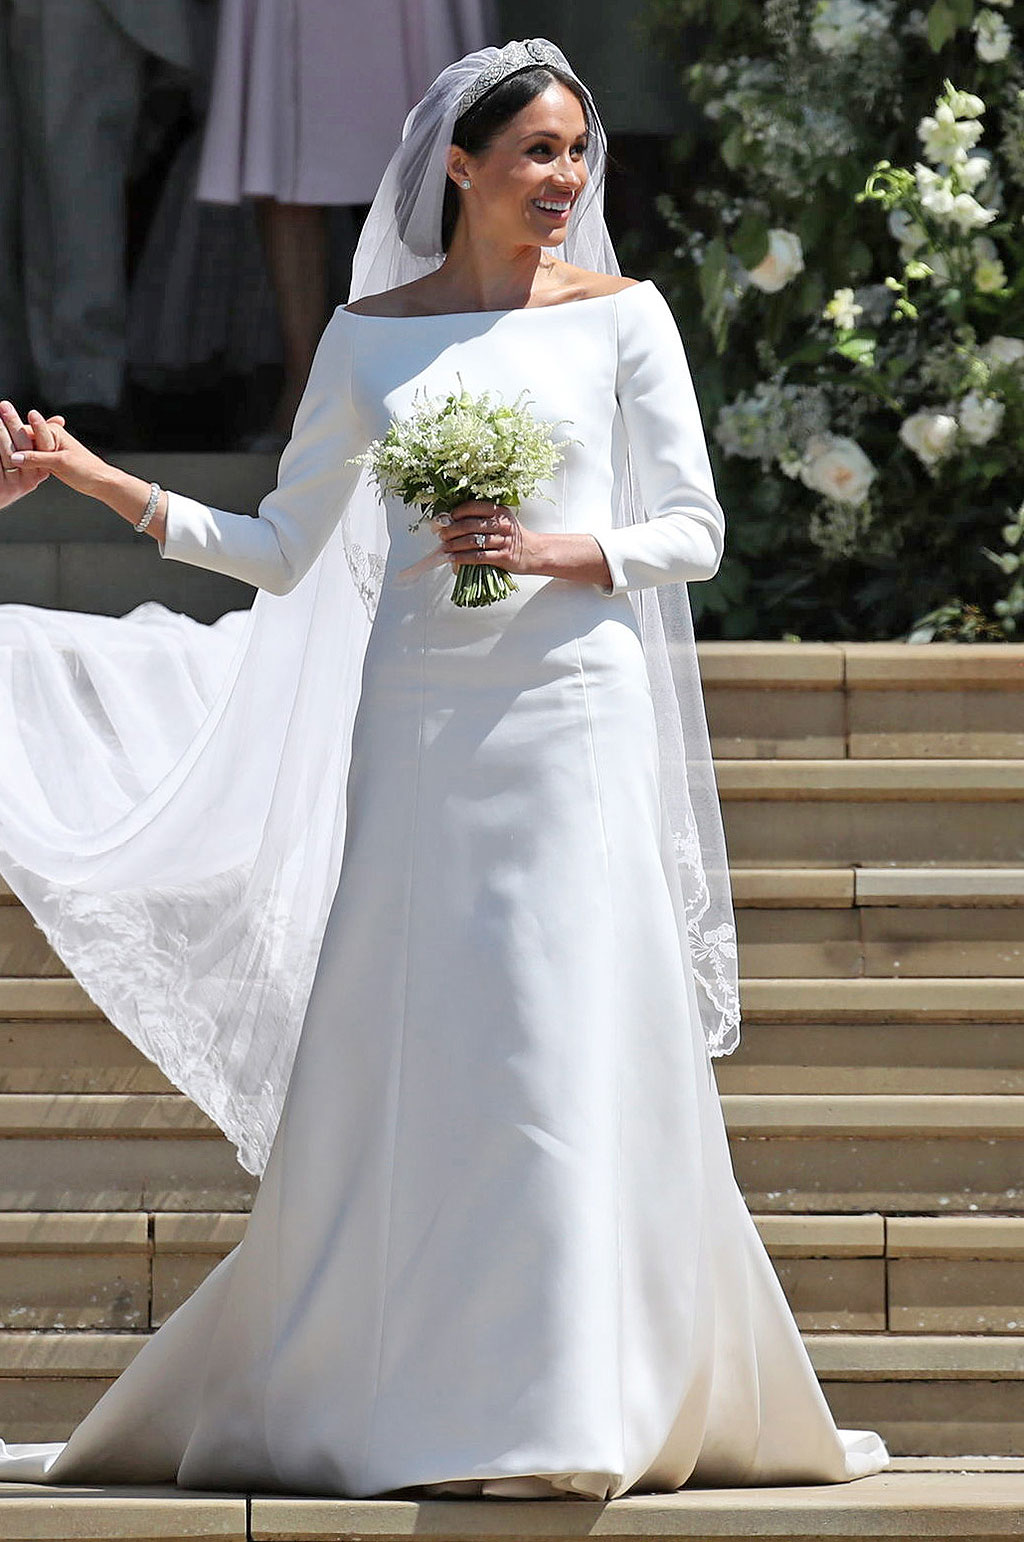 47459f2772ef53 Soon You'll Be Able to Visit Meghan Markle's Wedding Dress - BellaVitaStyle